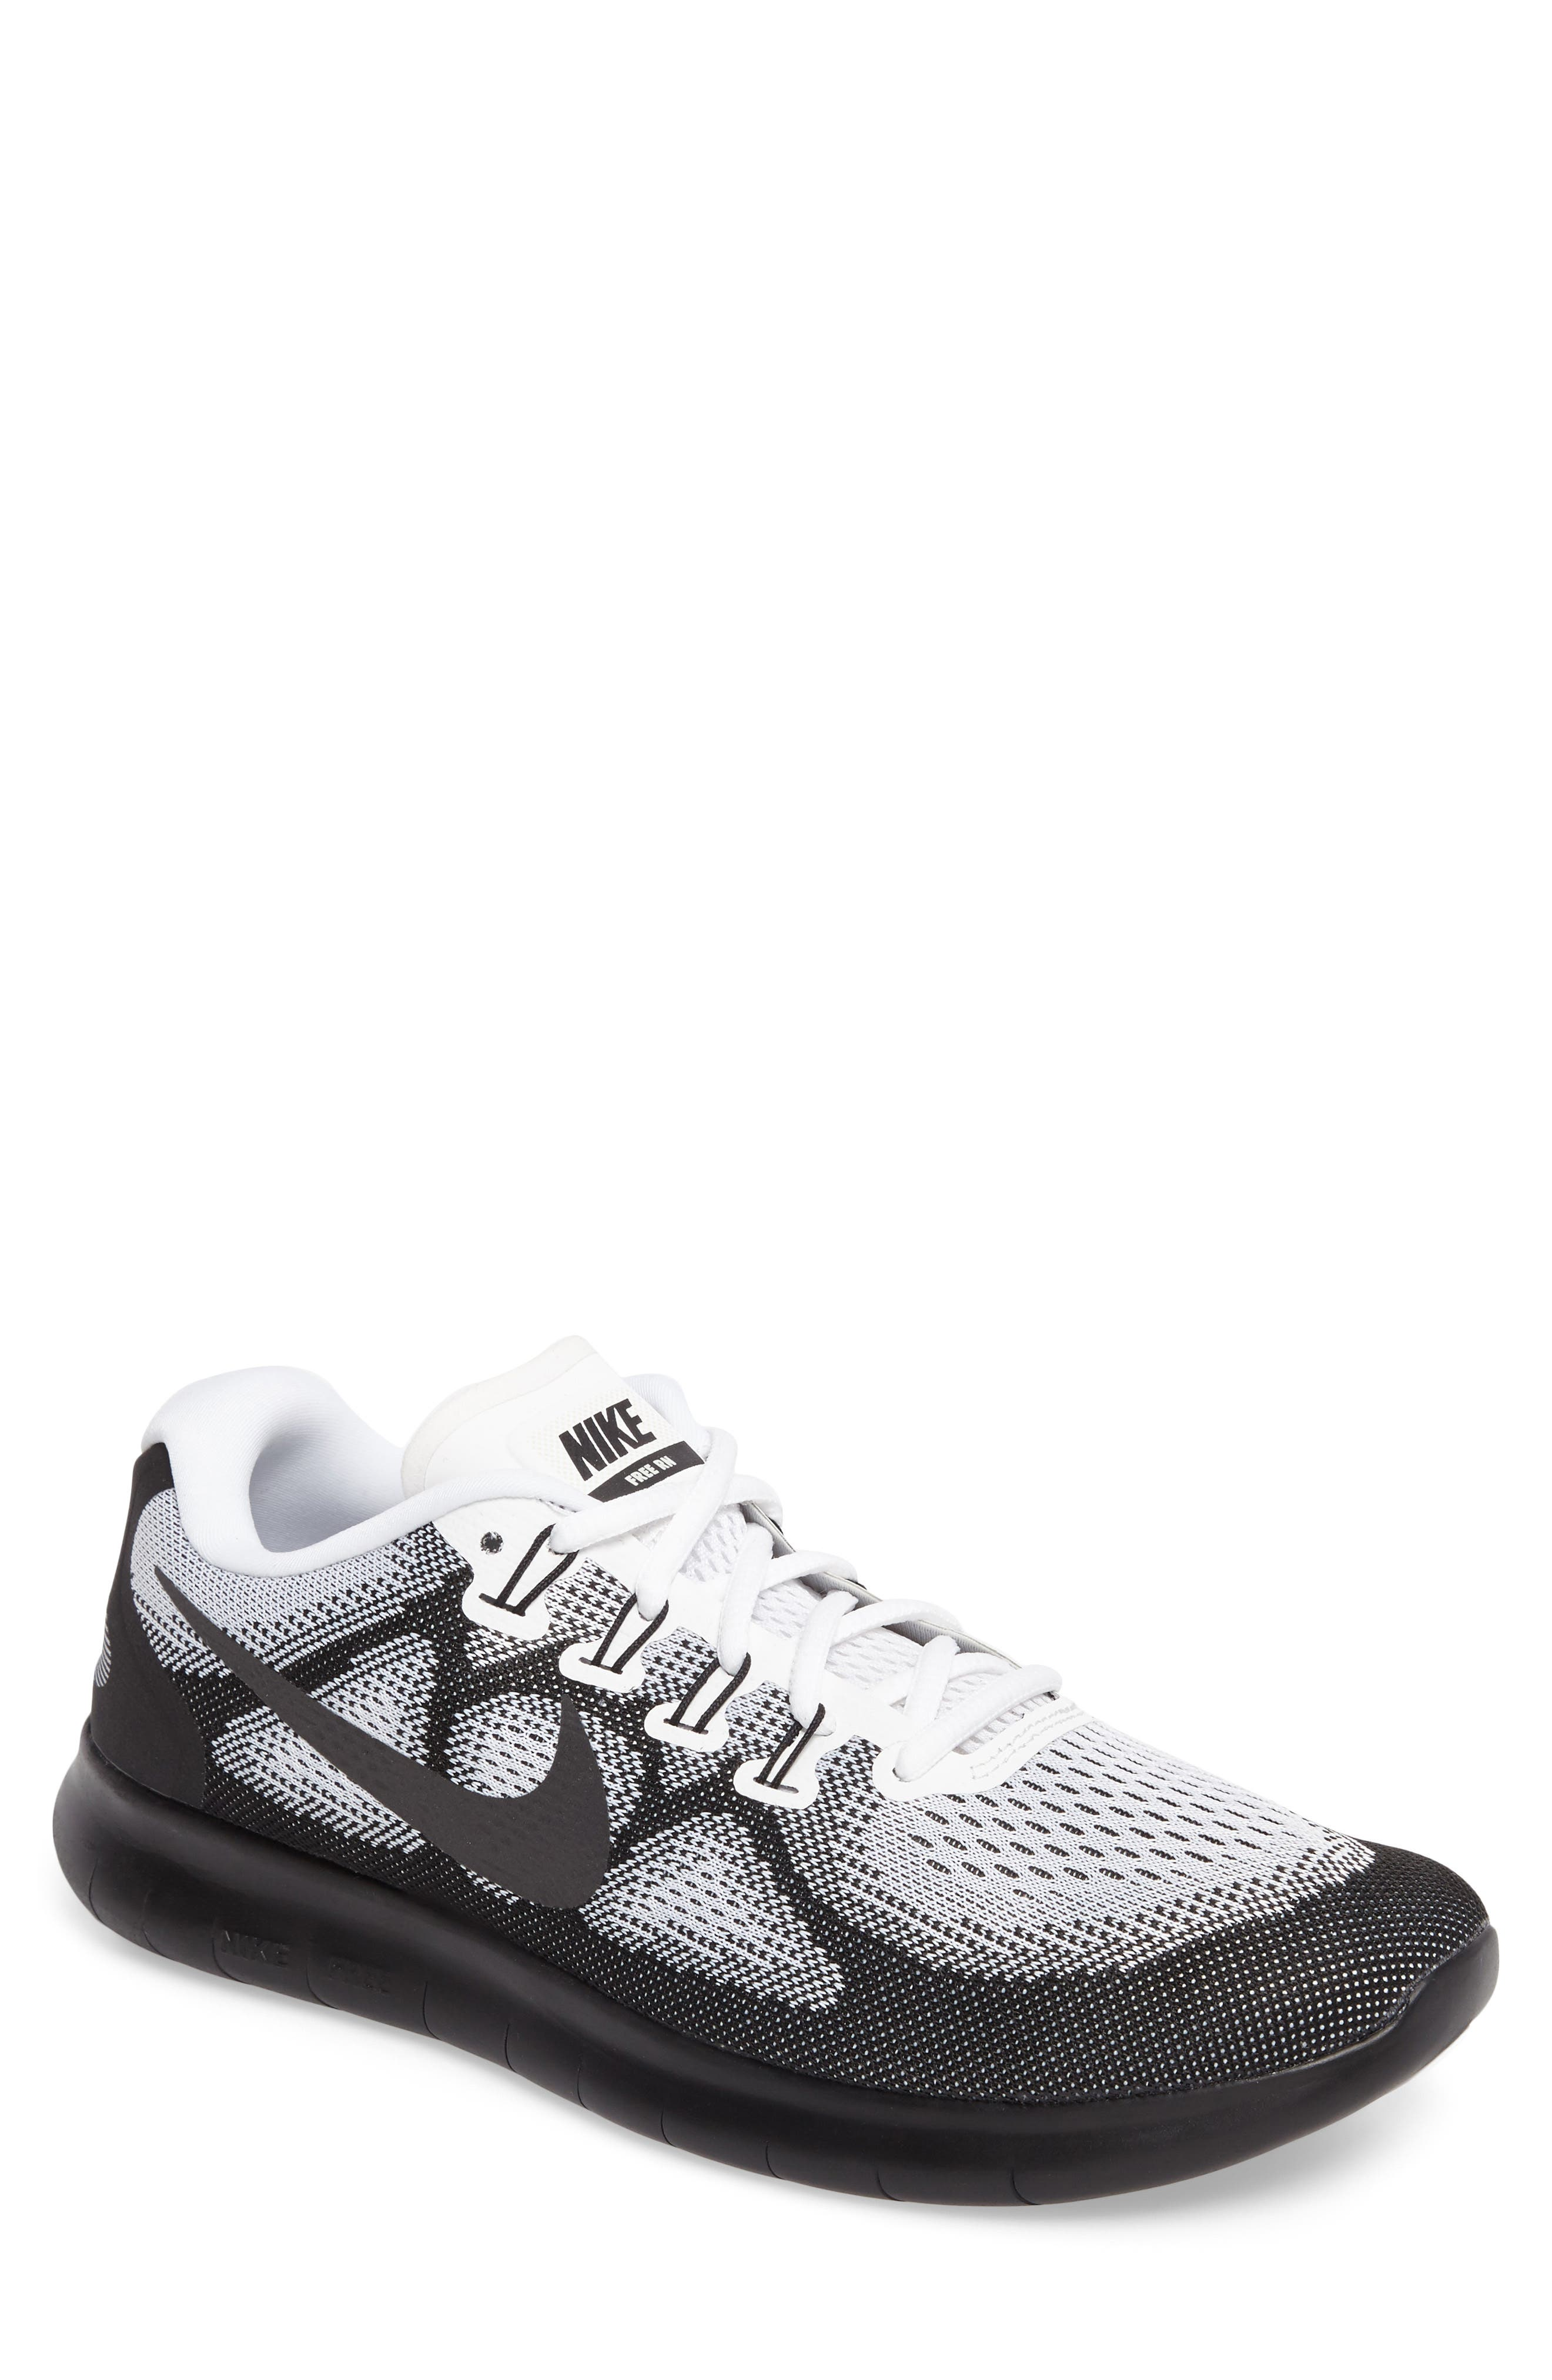 Free RN 2017 LE Running Shoe,                         Main,                         color, 002